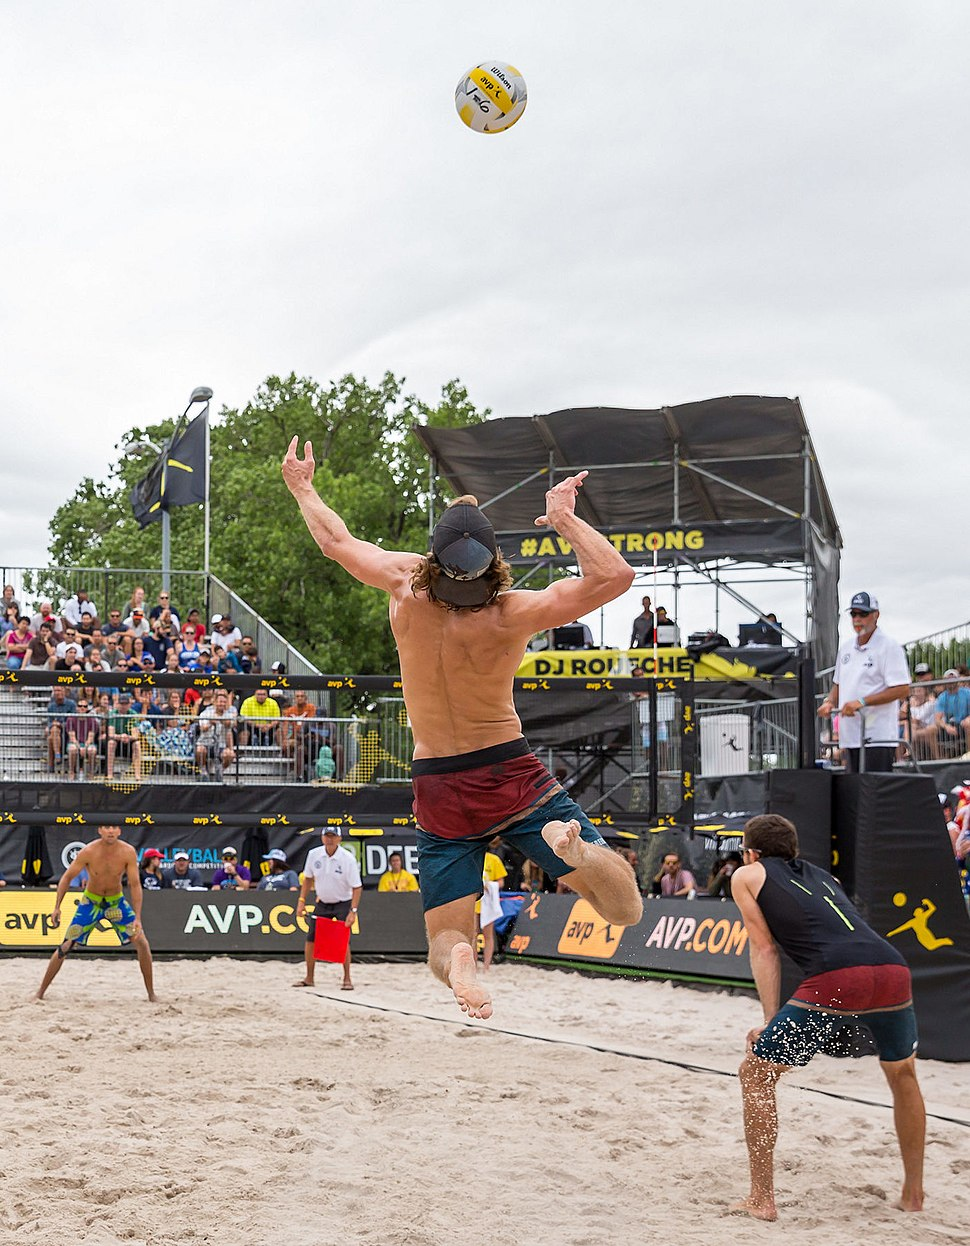 AVP Professional Beach Volleyball in Austin, Texas (2017-05-21) (35358811102) (cropped)